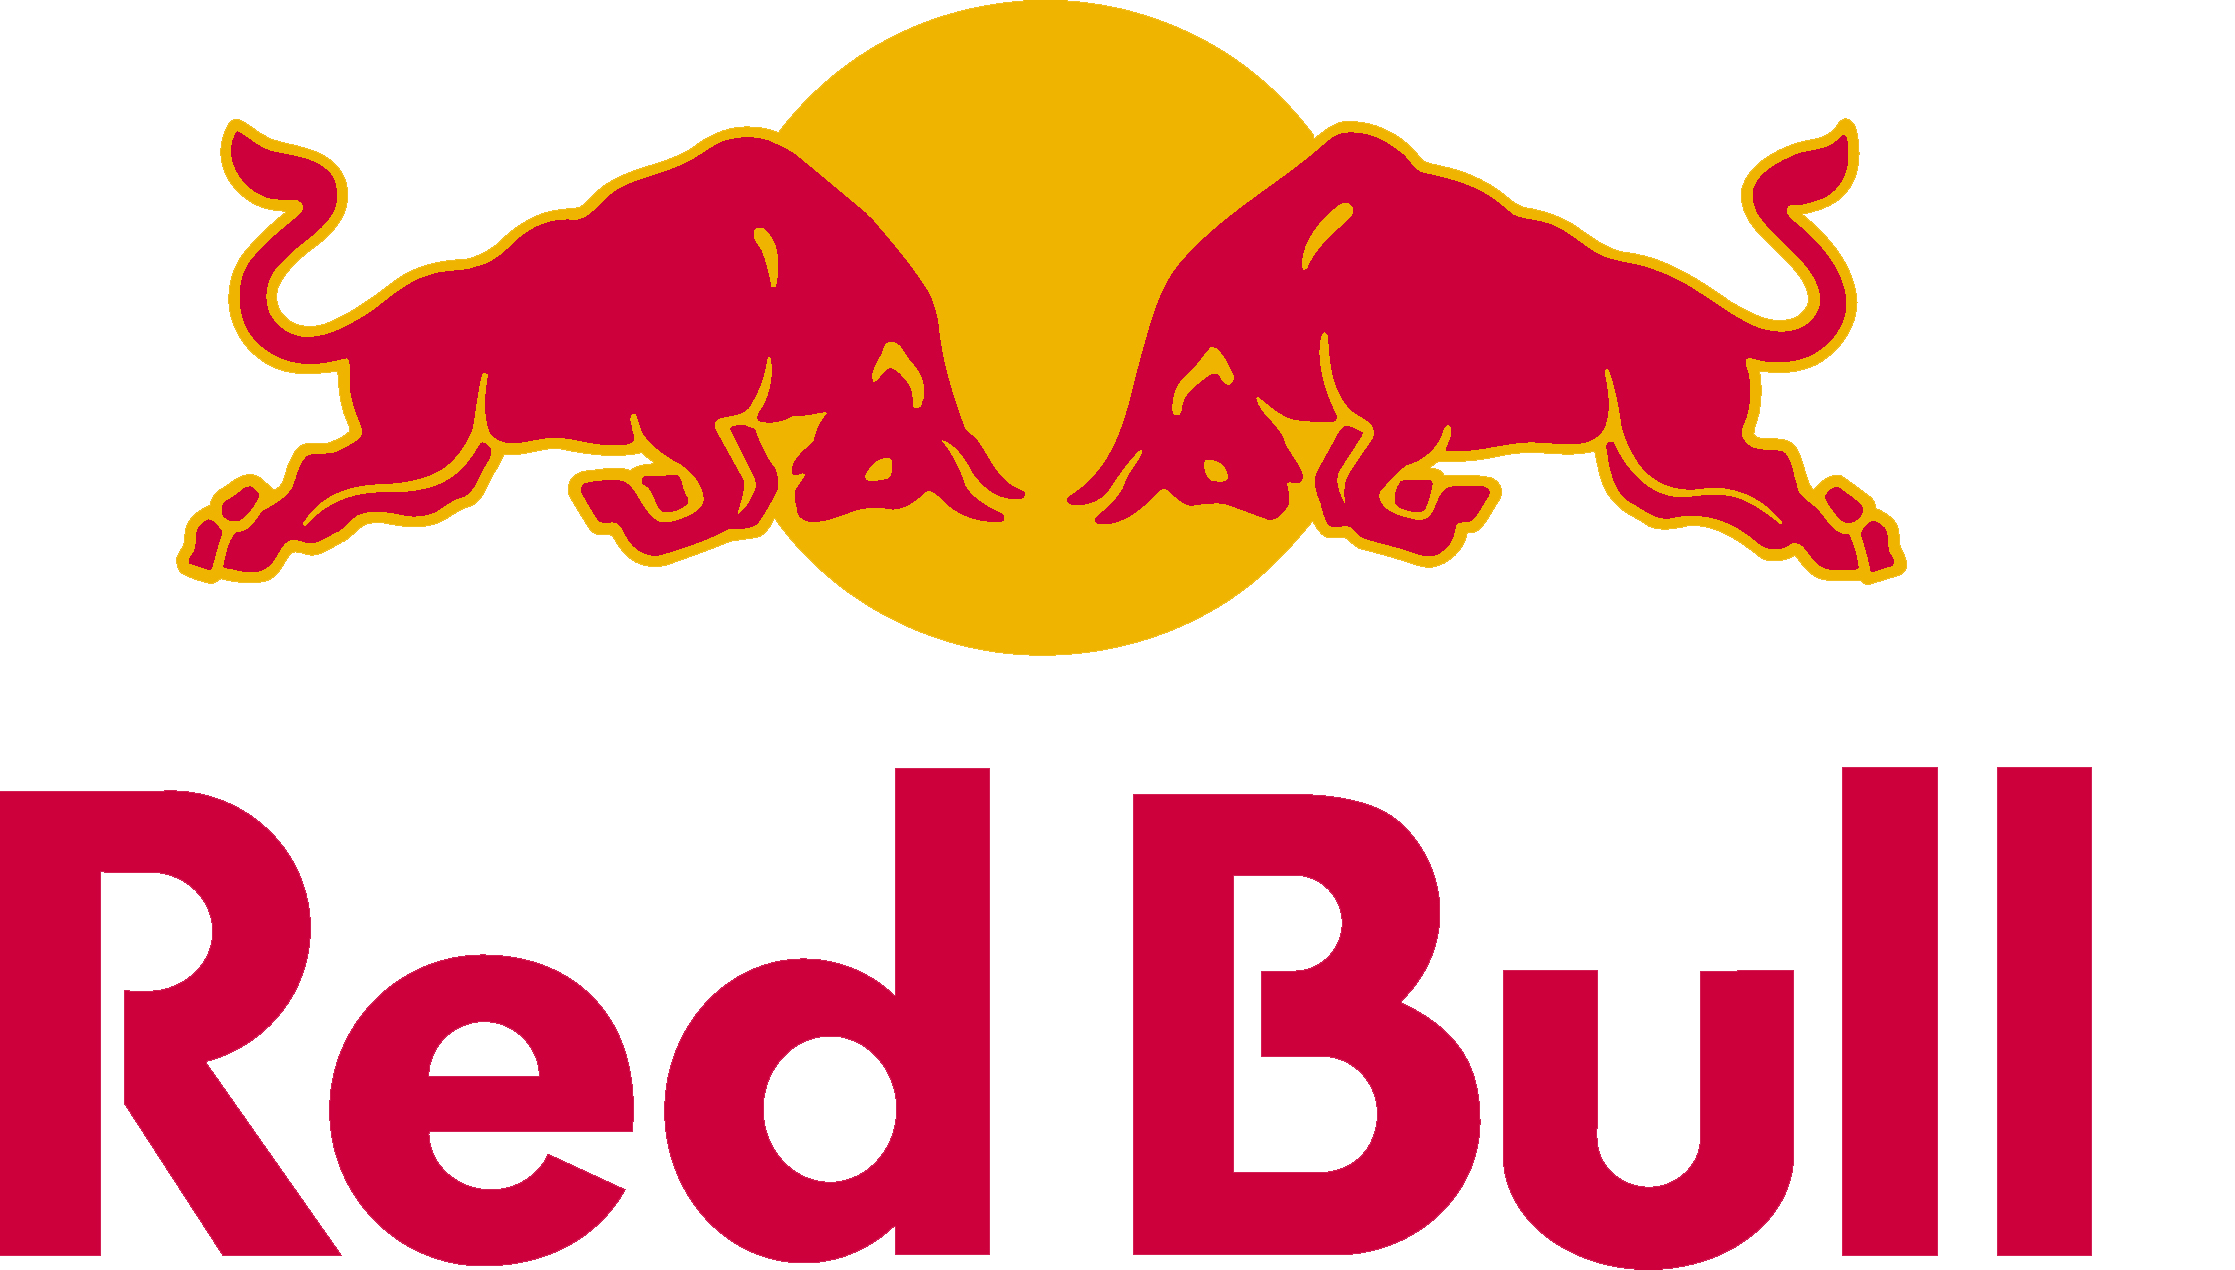 Red Bull Energy Drink has sponsored numerous drivers ...